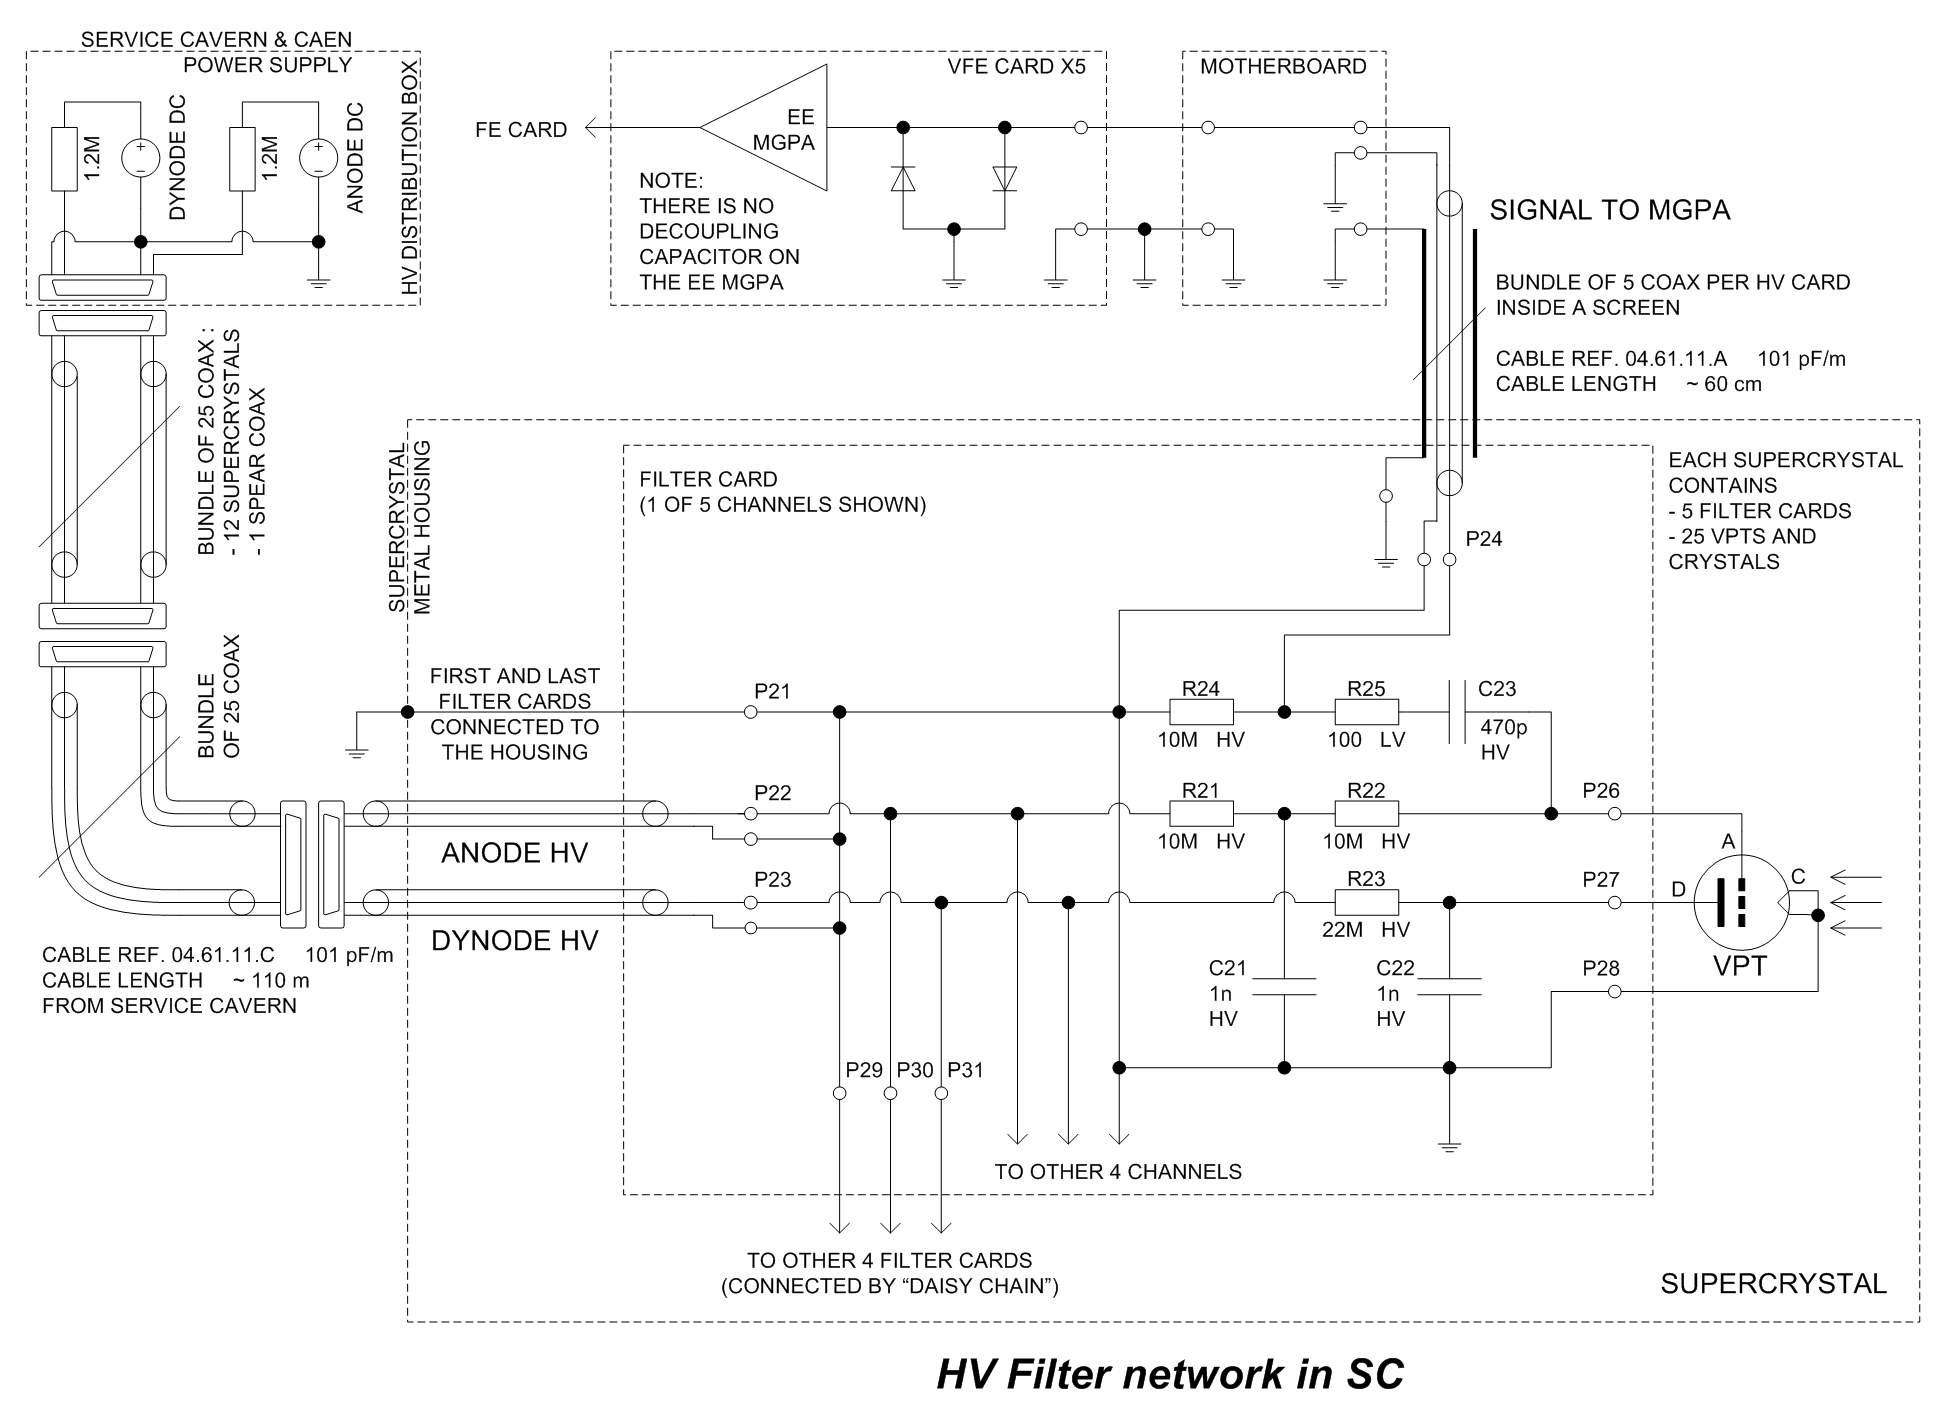 High Voltage Schematic Diagram Trusted Schematics Circuit Together With Stun Gun Circuits Vpt Regulator